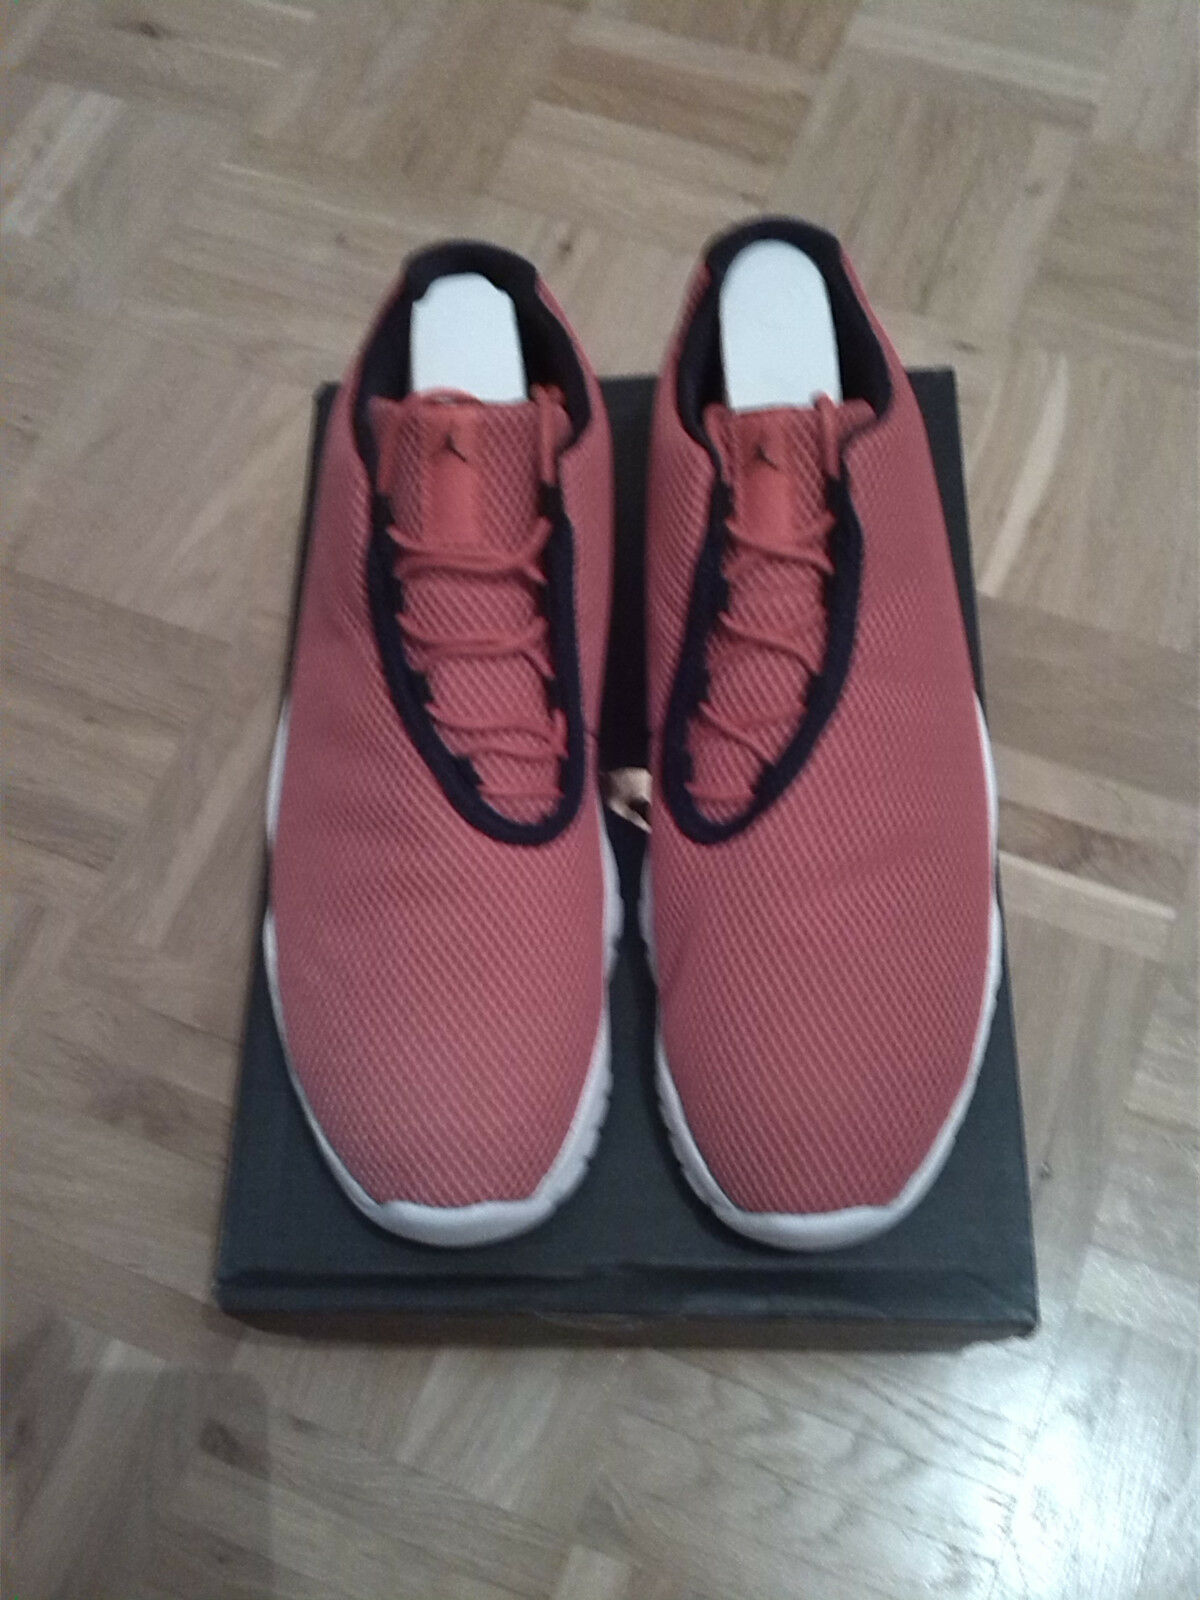 Bir Jordan Future Low - University Red - Size US11.5  / EU45.5 - Neu